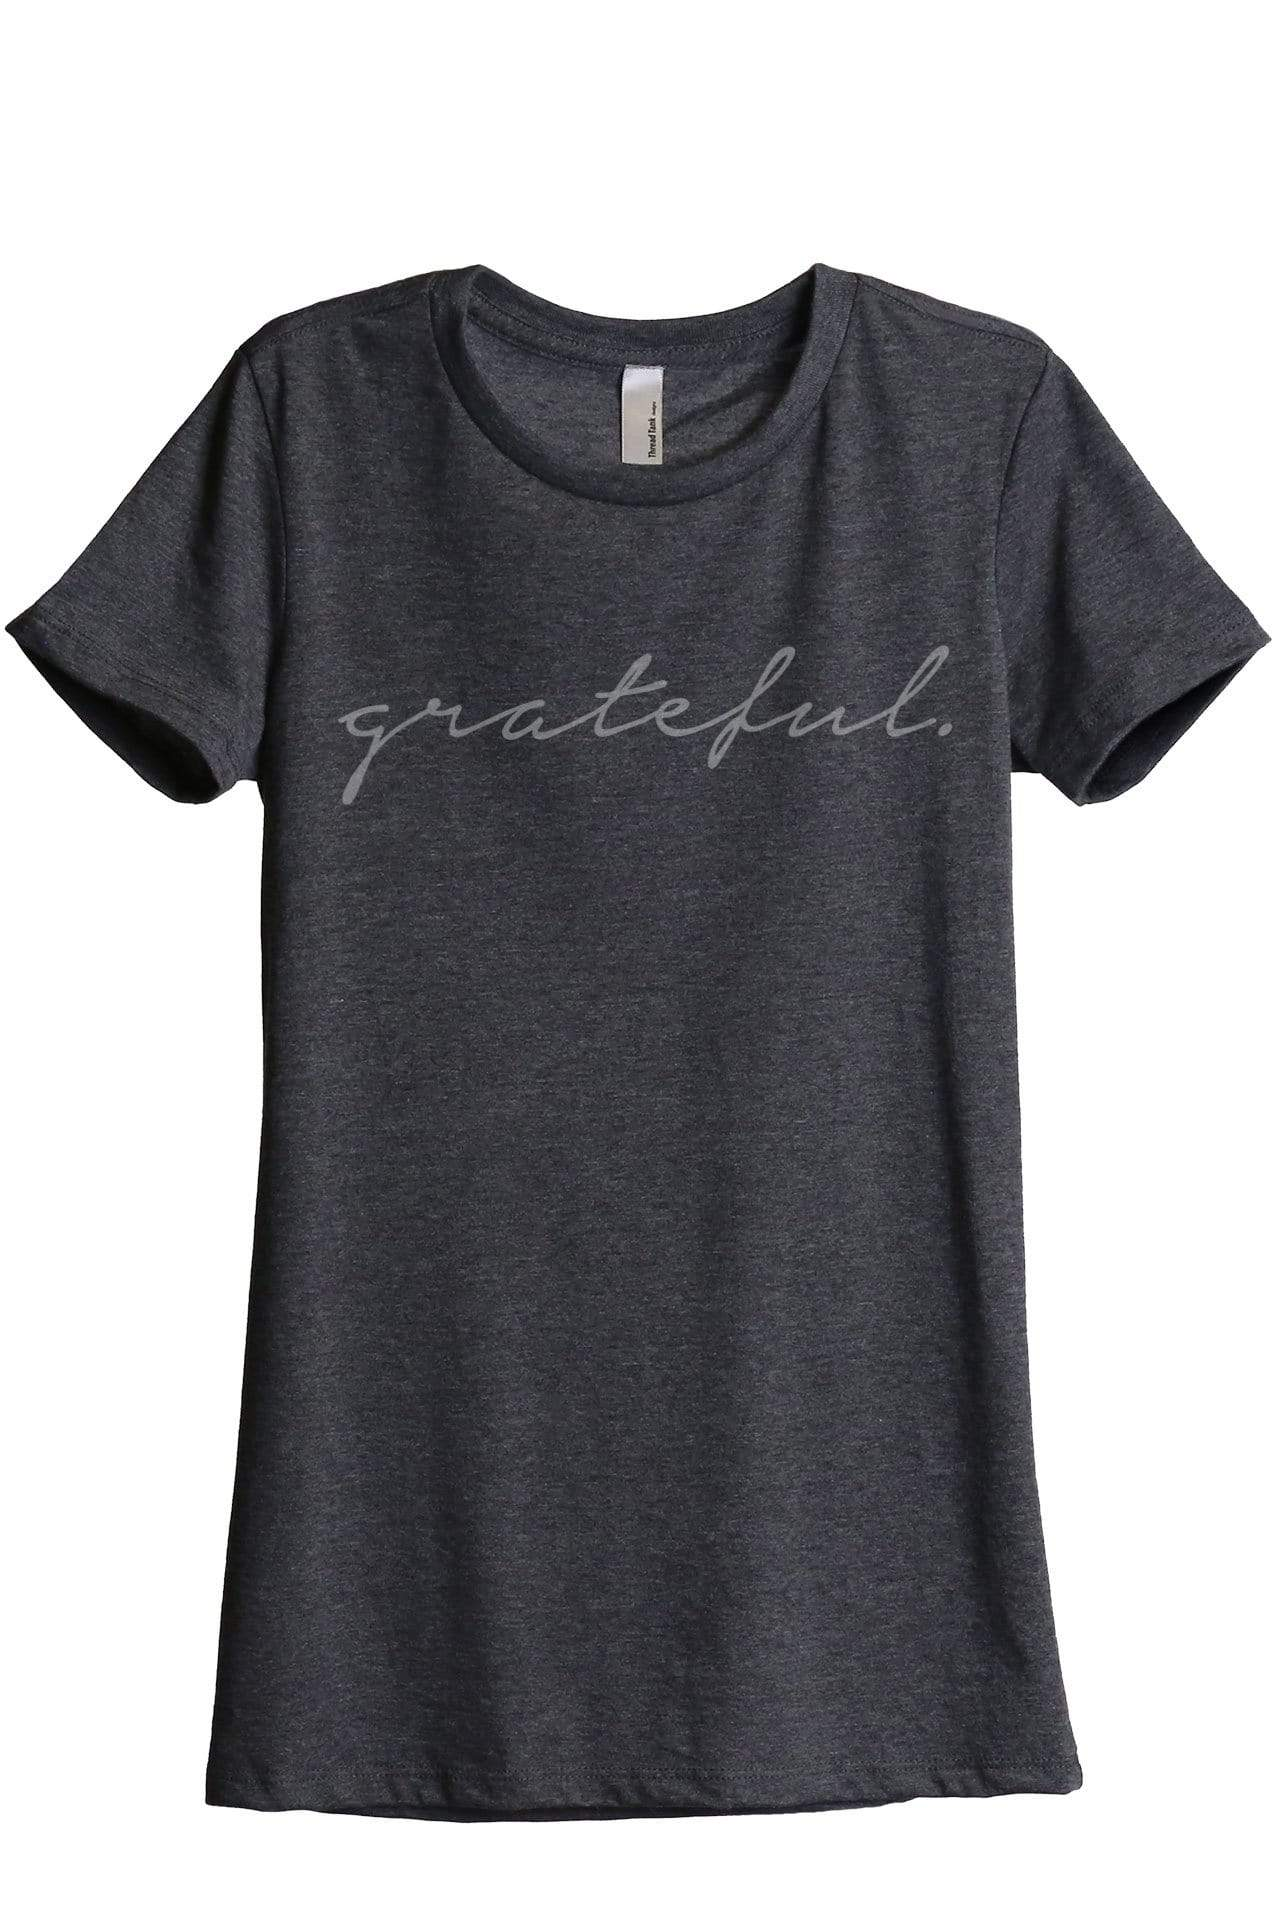 Grateful Women Charcoal Grey Relaxed Crew T-Shirt Tee Top